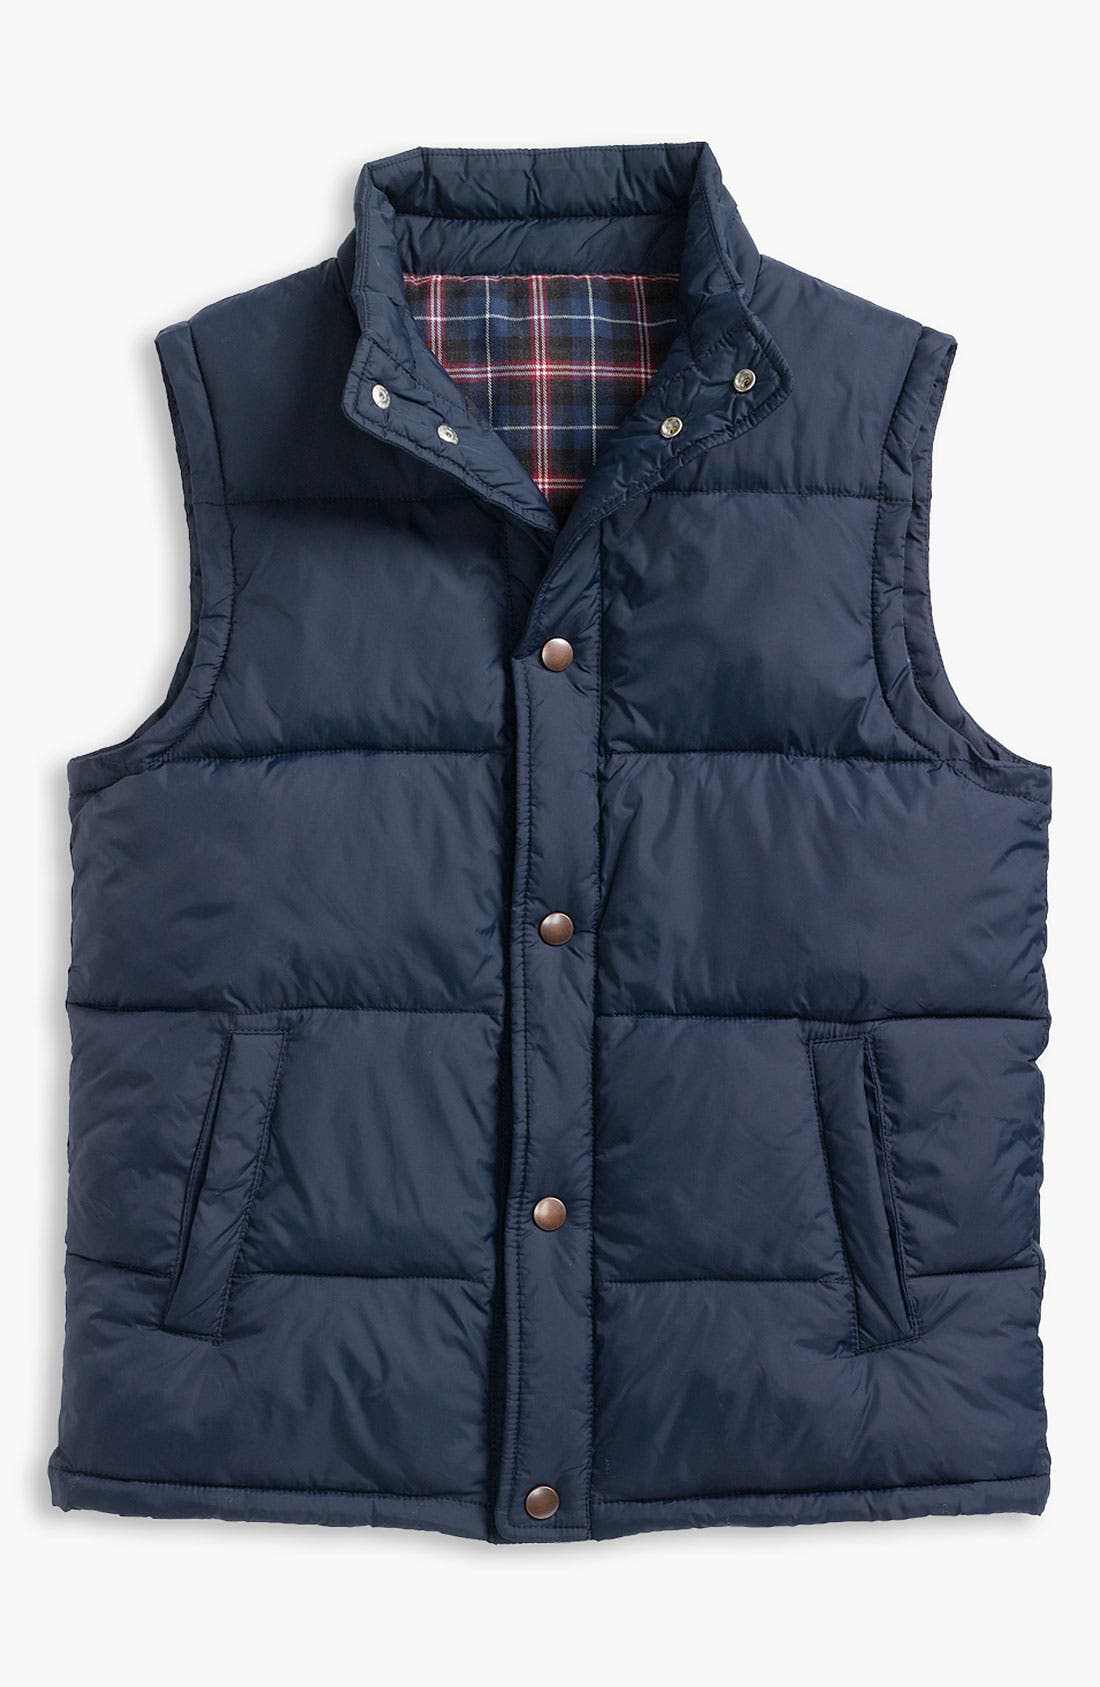 Alternate Image 1 Selected - Tucker + Tate Flannel Lined Field Vest (Big Boys)